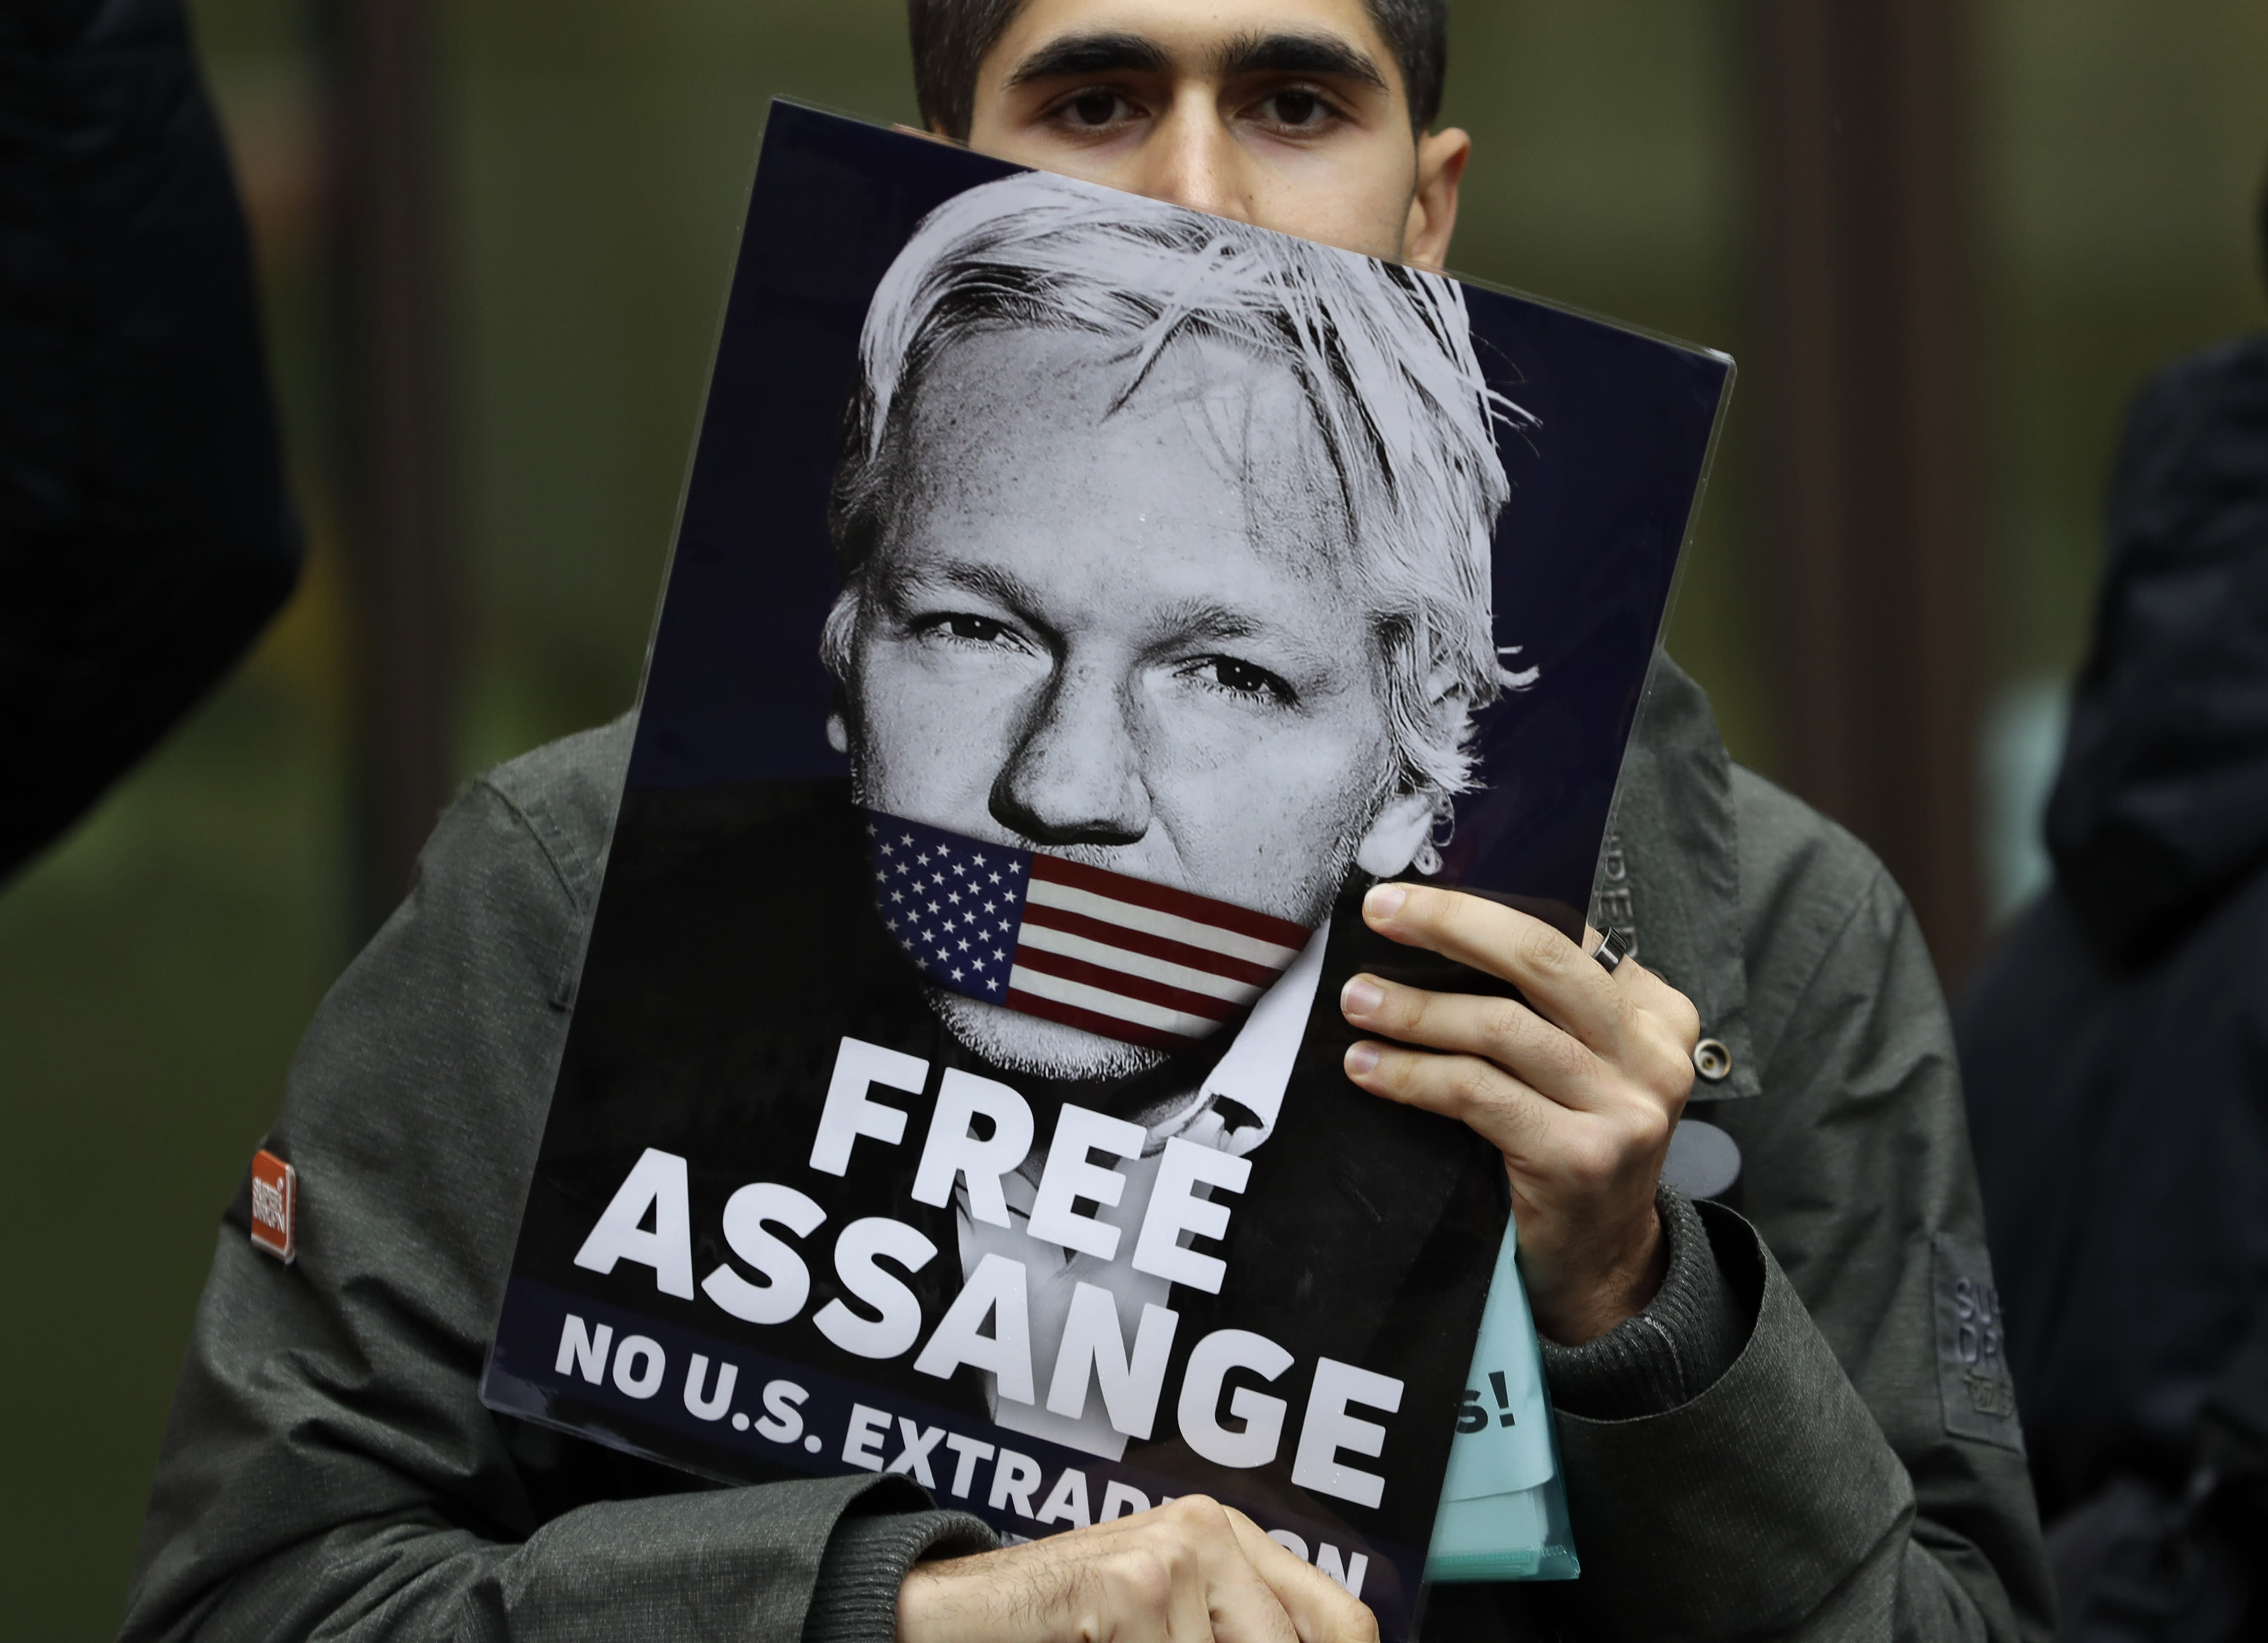 WikiLeaks founder Assange in United Kingdom court to fight extradition